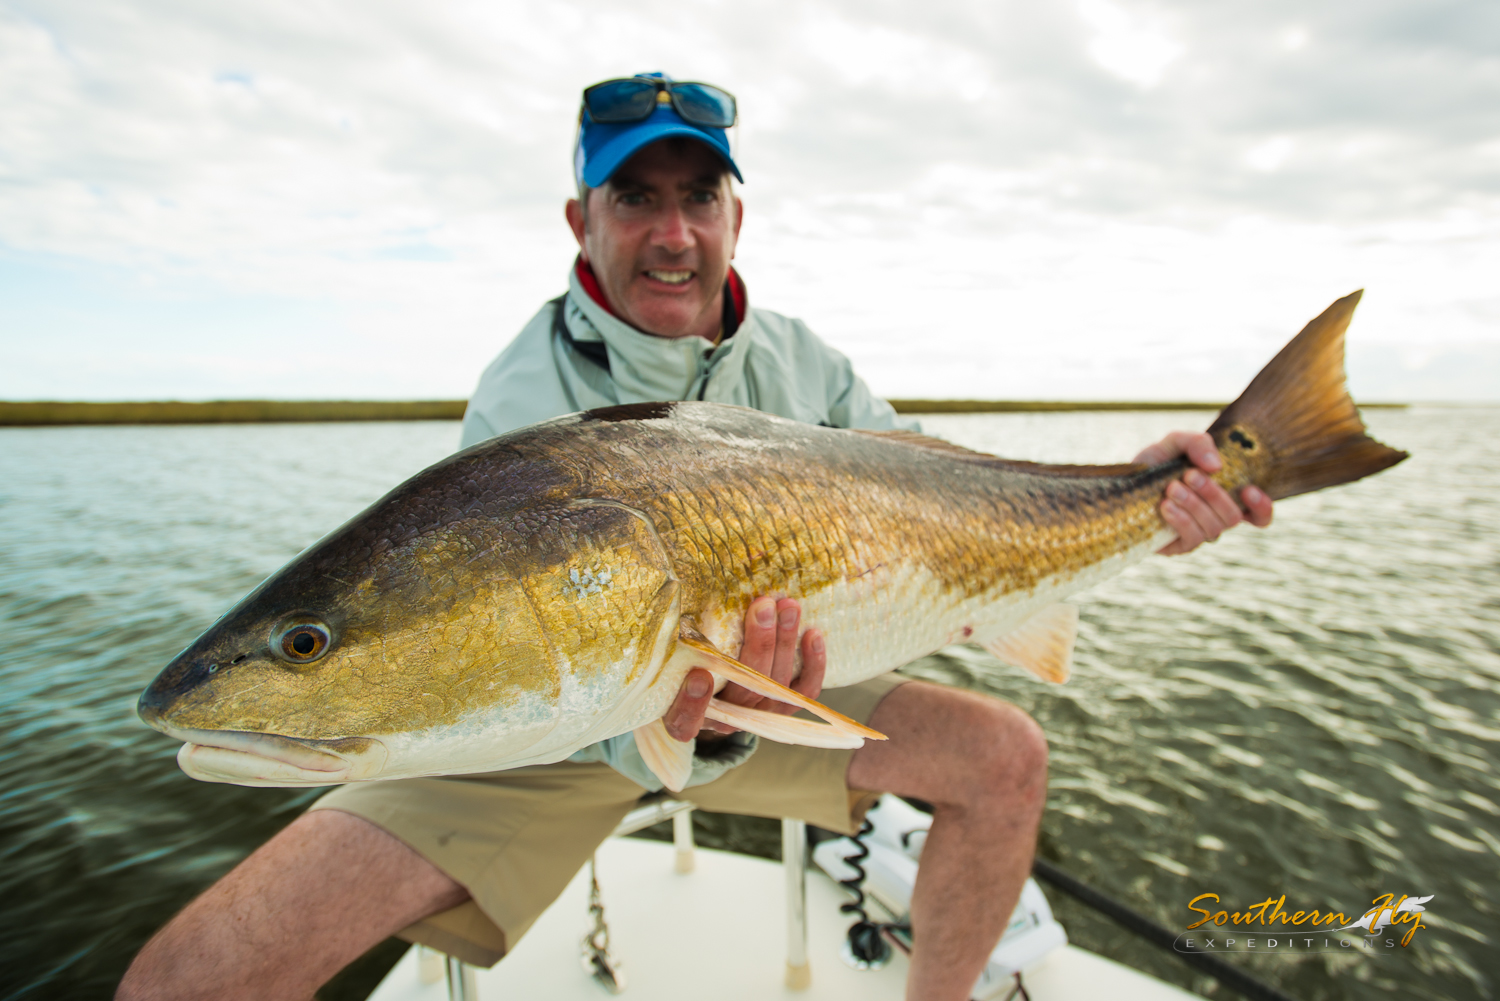 Fly Fishing for monster redfish in the louisiana marsh area with Southern Fly Expeditions